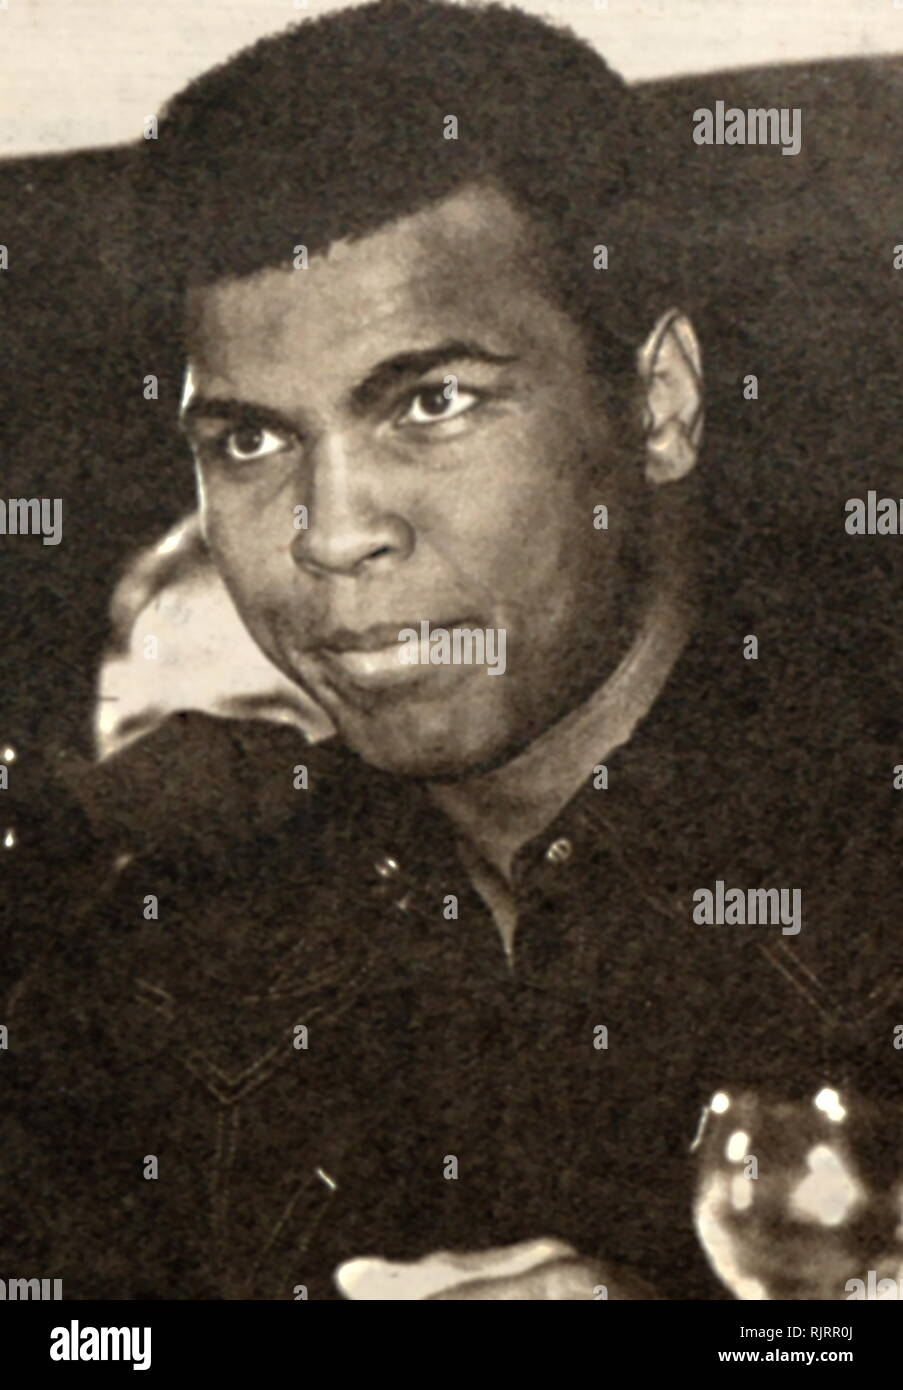 Muhammad Ali,(1942 - 2016). Ali was an American professional boxer and activist; He is widely regarded as one of the most significant and celebrated sports figures of the 20th century. - Stock Image